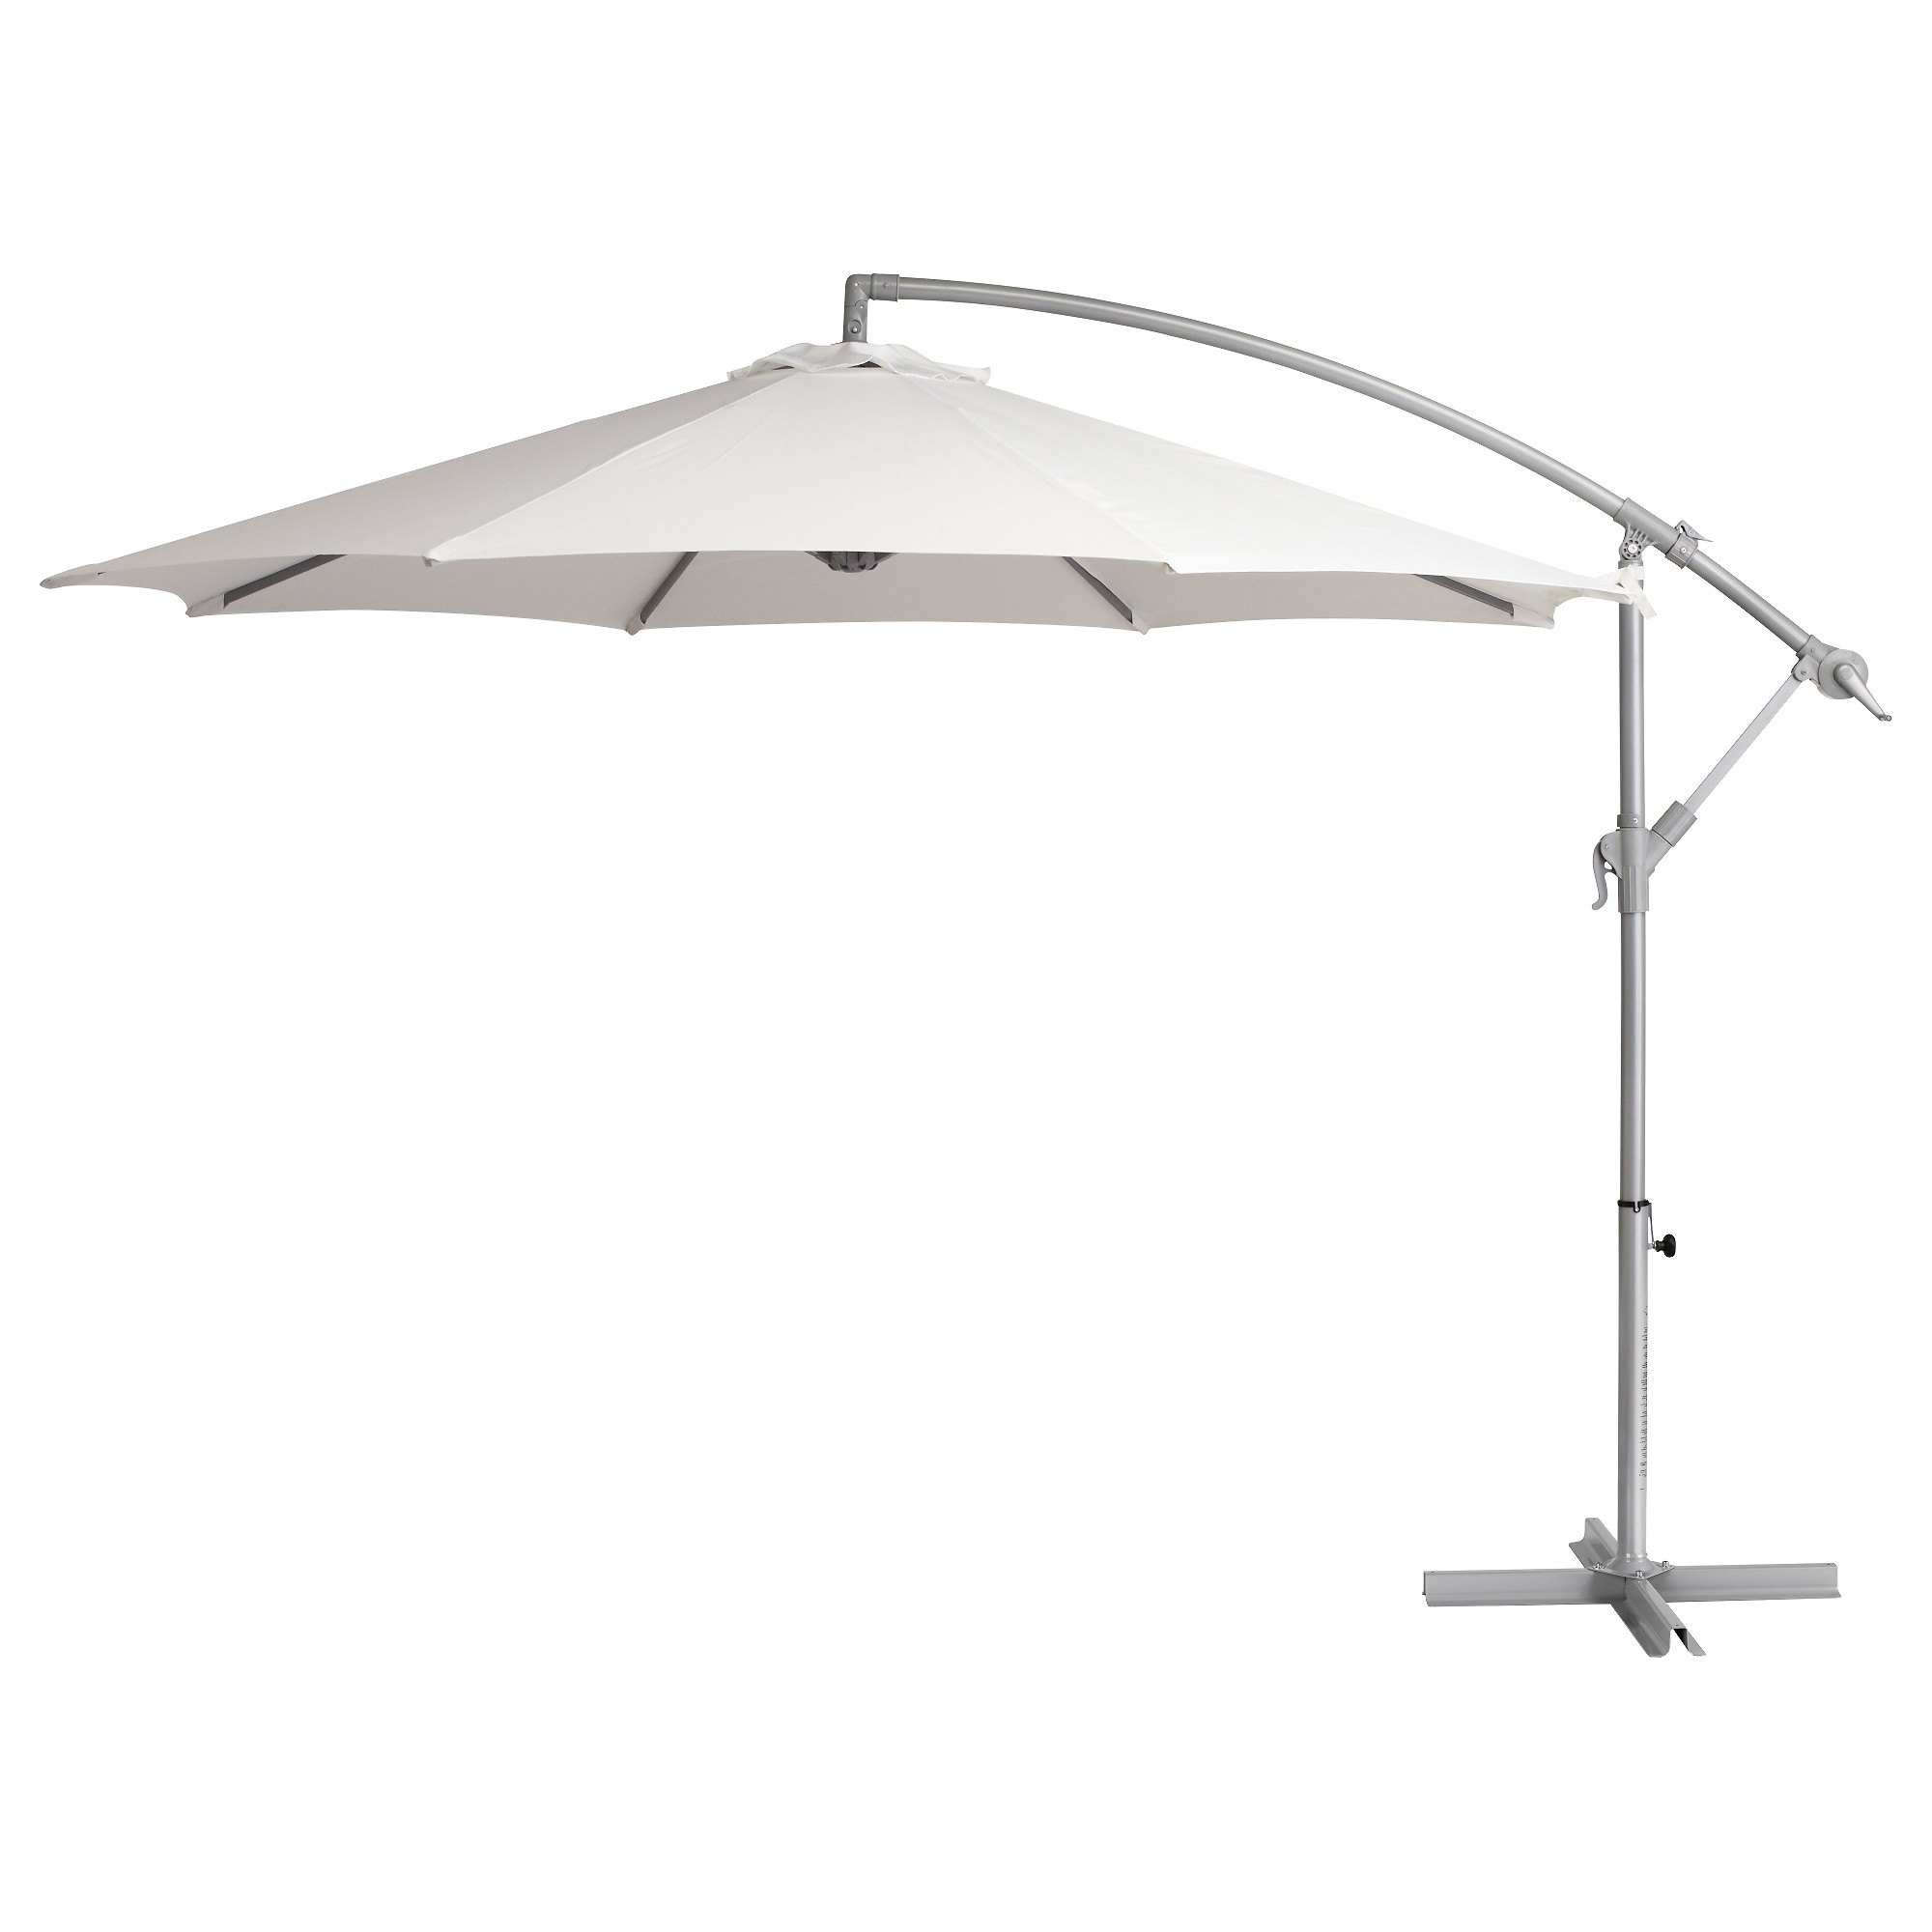 Popular Ikea Patio Umbrellas Throughout 49 Ikea Patio Umbrella, Svart Umbrella Base Ikea (View 17 of 20)